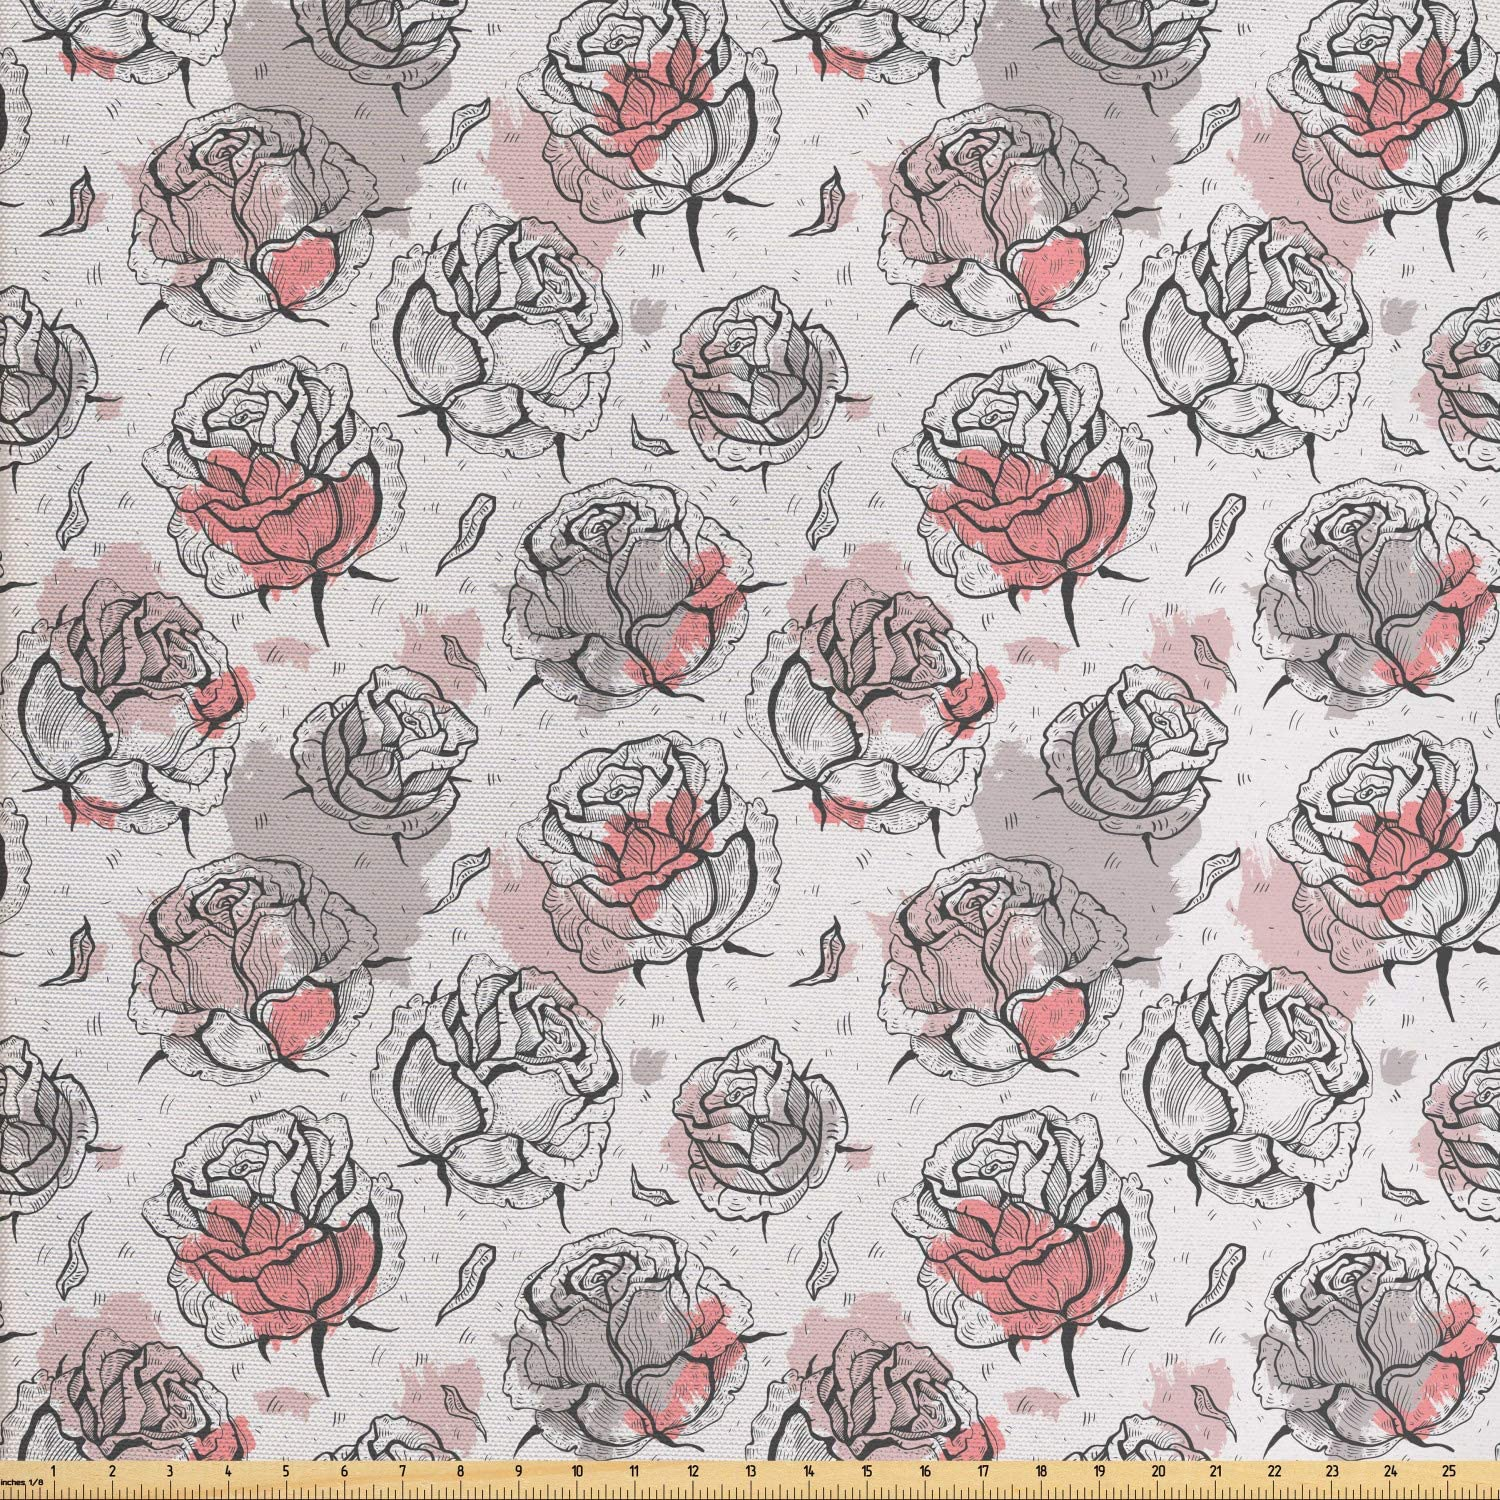 Ambesonne Rose Fabric by The Yard, Romantic Flowers with Pastel Paint Blots, Decorative Fabric for Upholstery and Home Accents, 1 Yard, Pale Rose Coral Grey